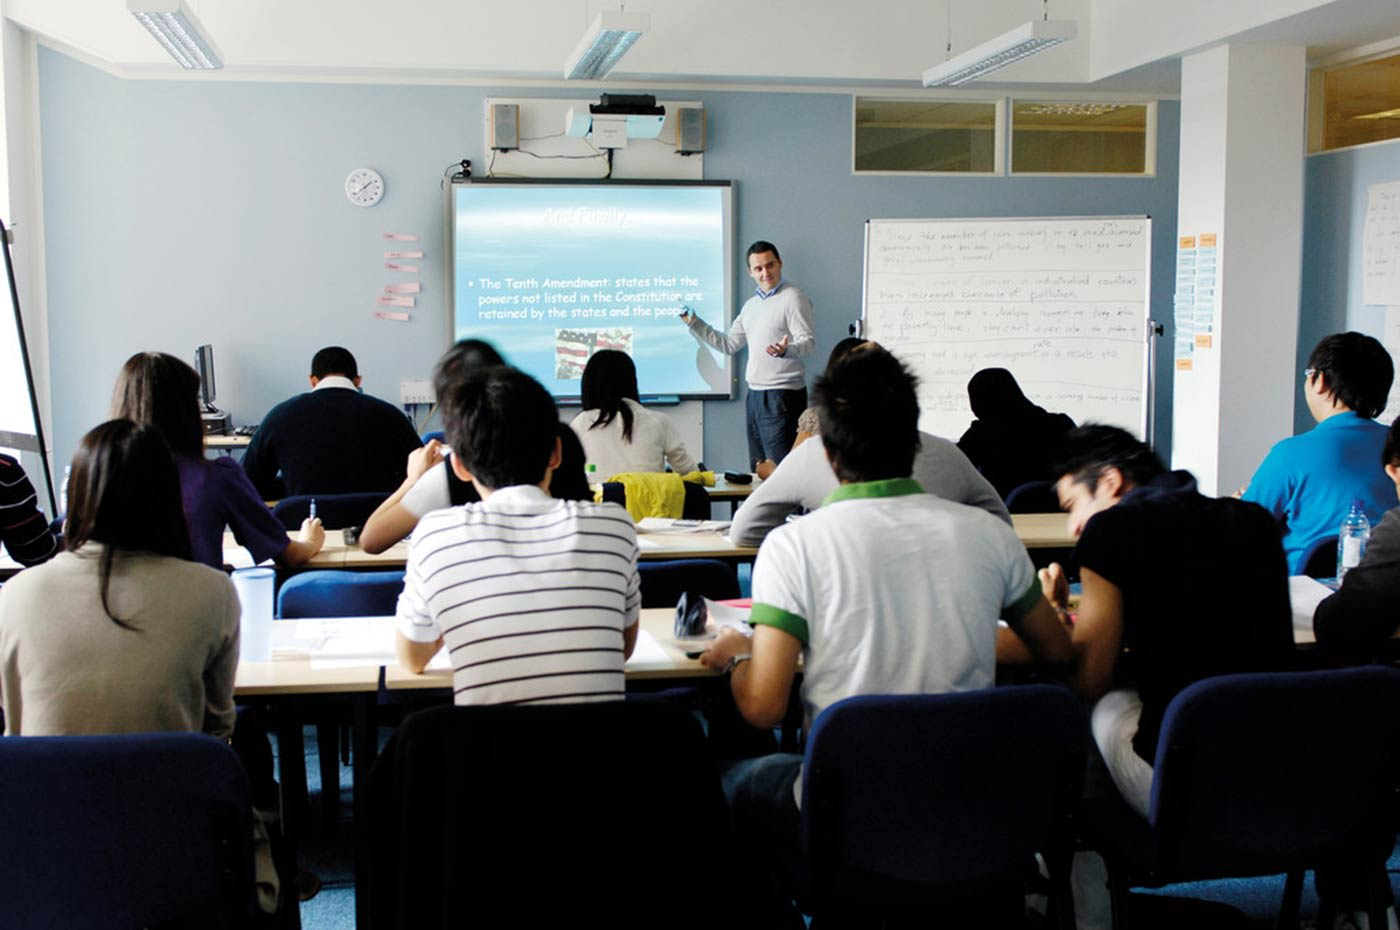 All of our English language courses are accredited by the British Council